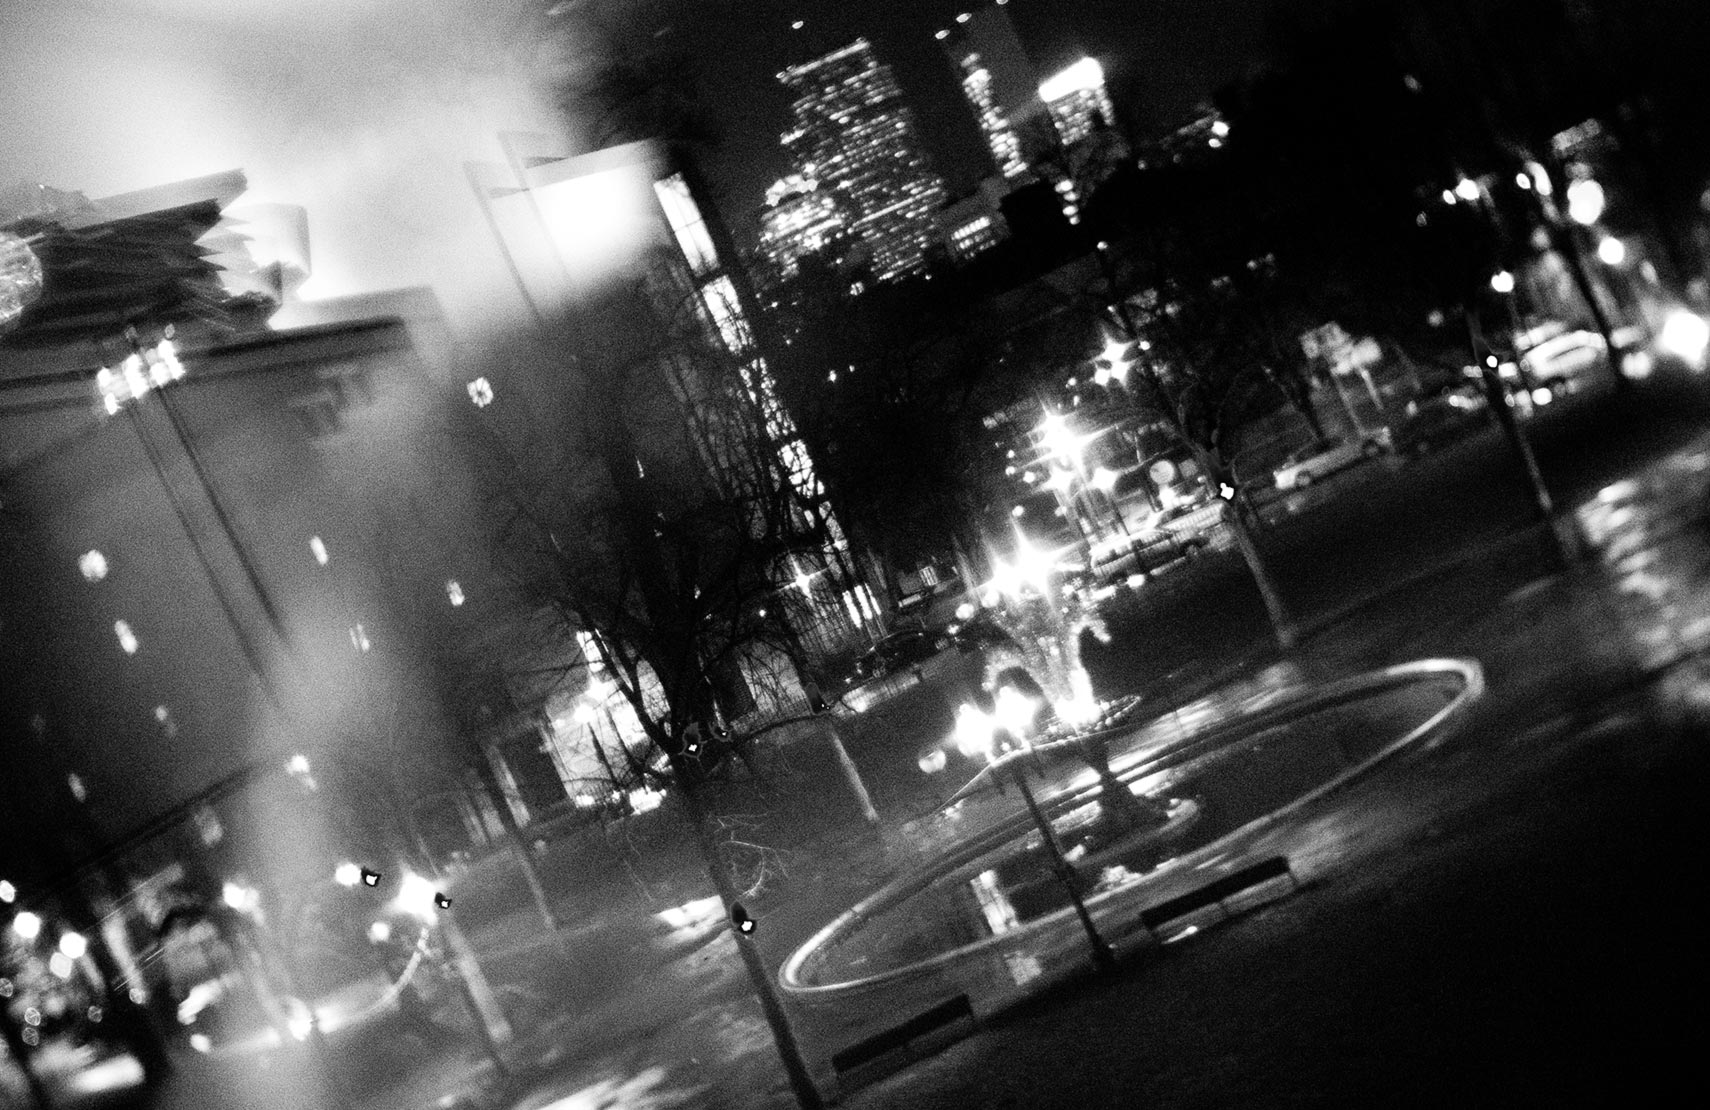 View of Blackstone Square at night from Sametz Blackstone Associates in black and white